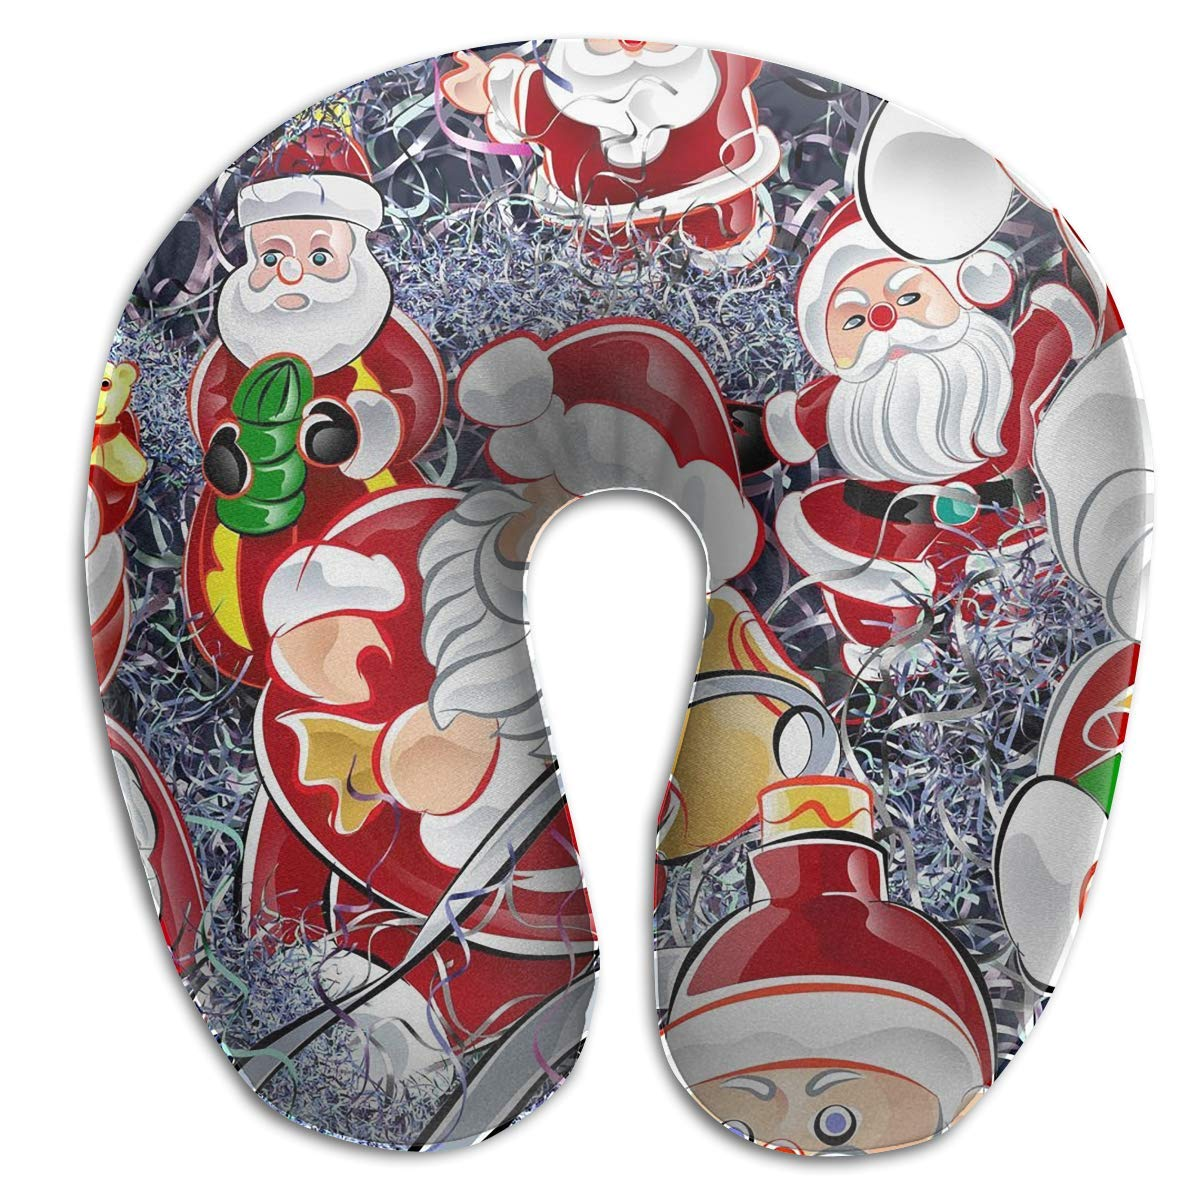 Xdevrbk U-Shaped Neck Pillow Smiles Holiday Pillows Soft Portable for Travel Reading Sleeping